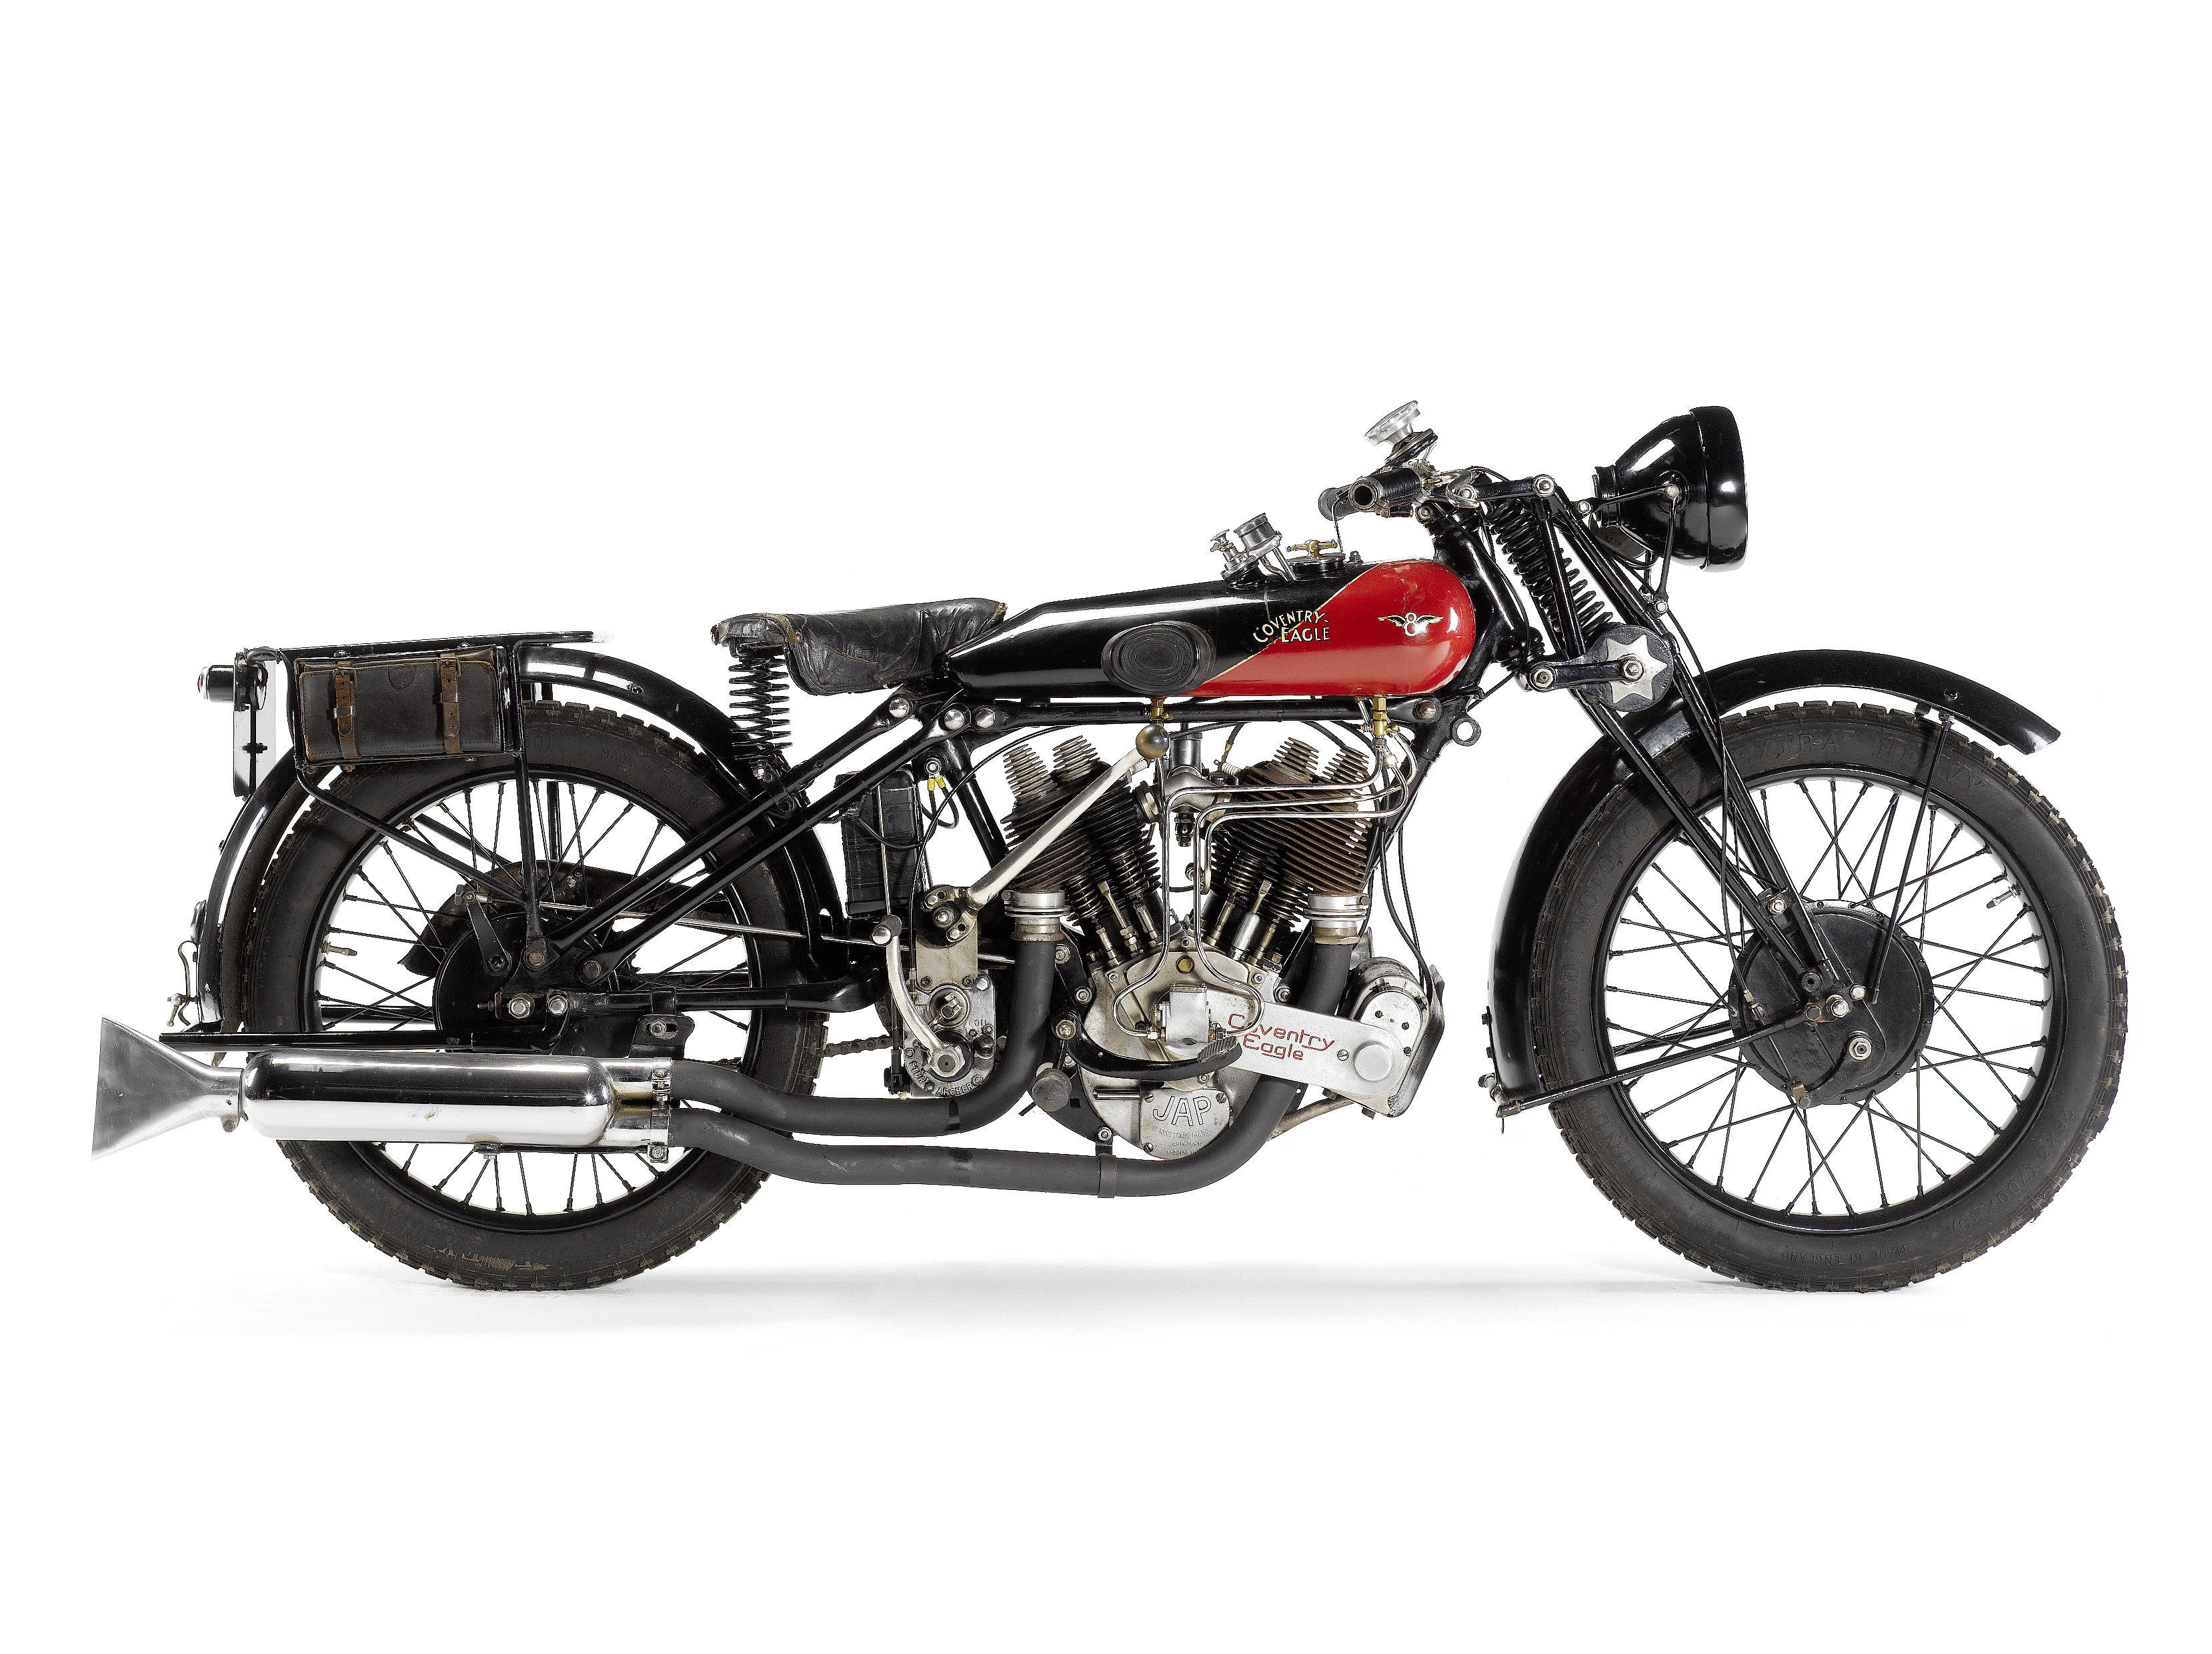 Is now the time to invest in a classic motorcycle?